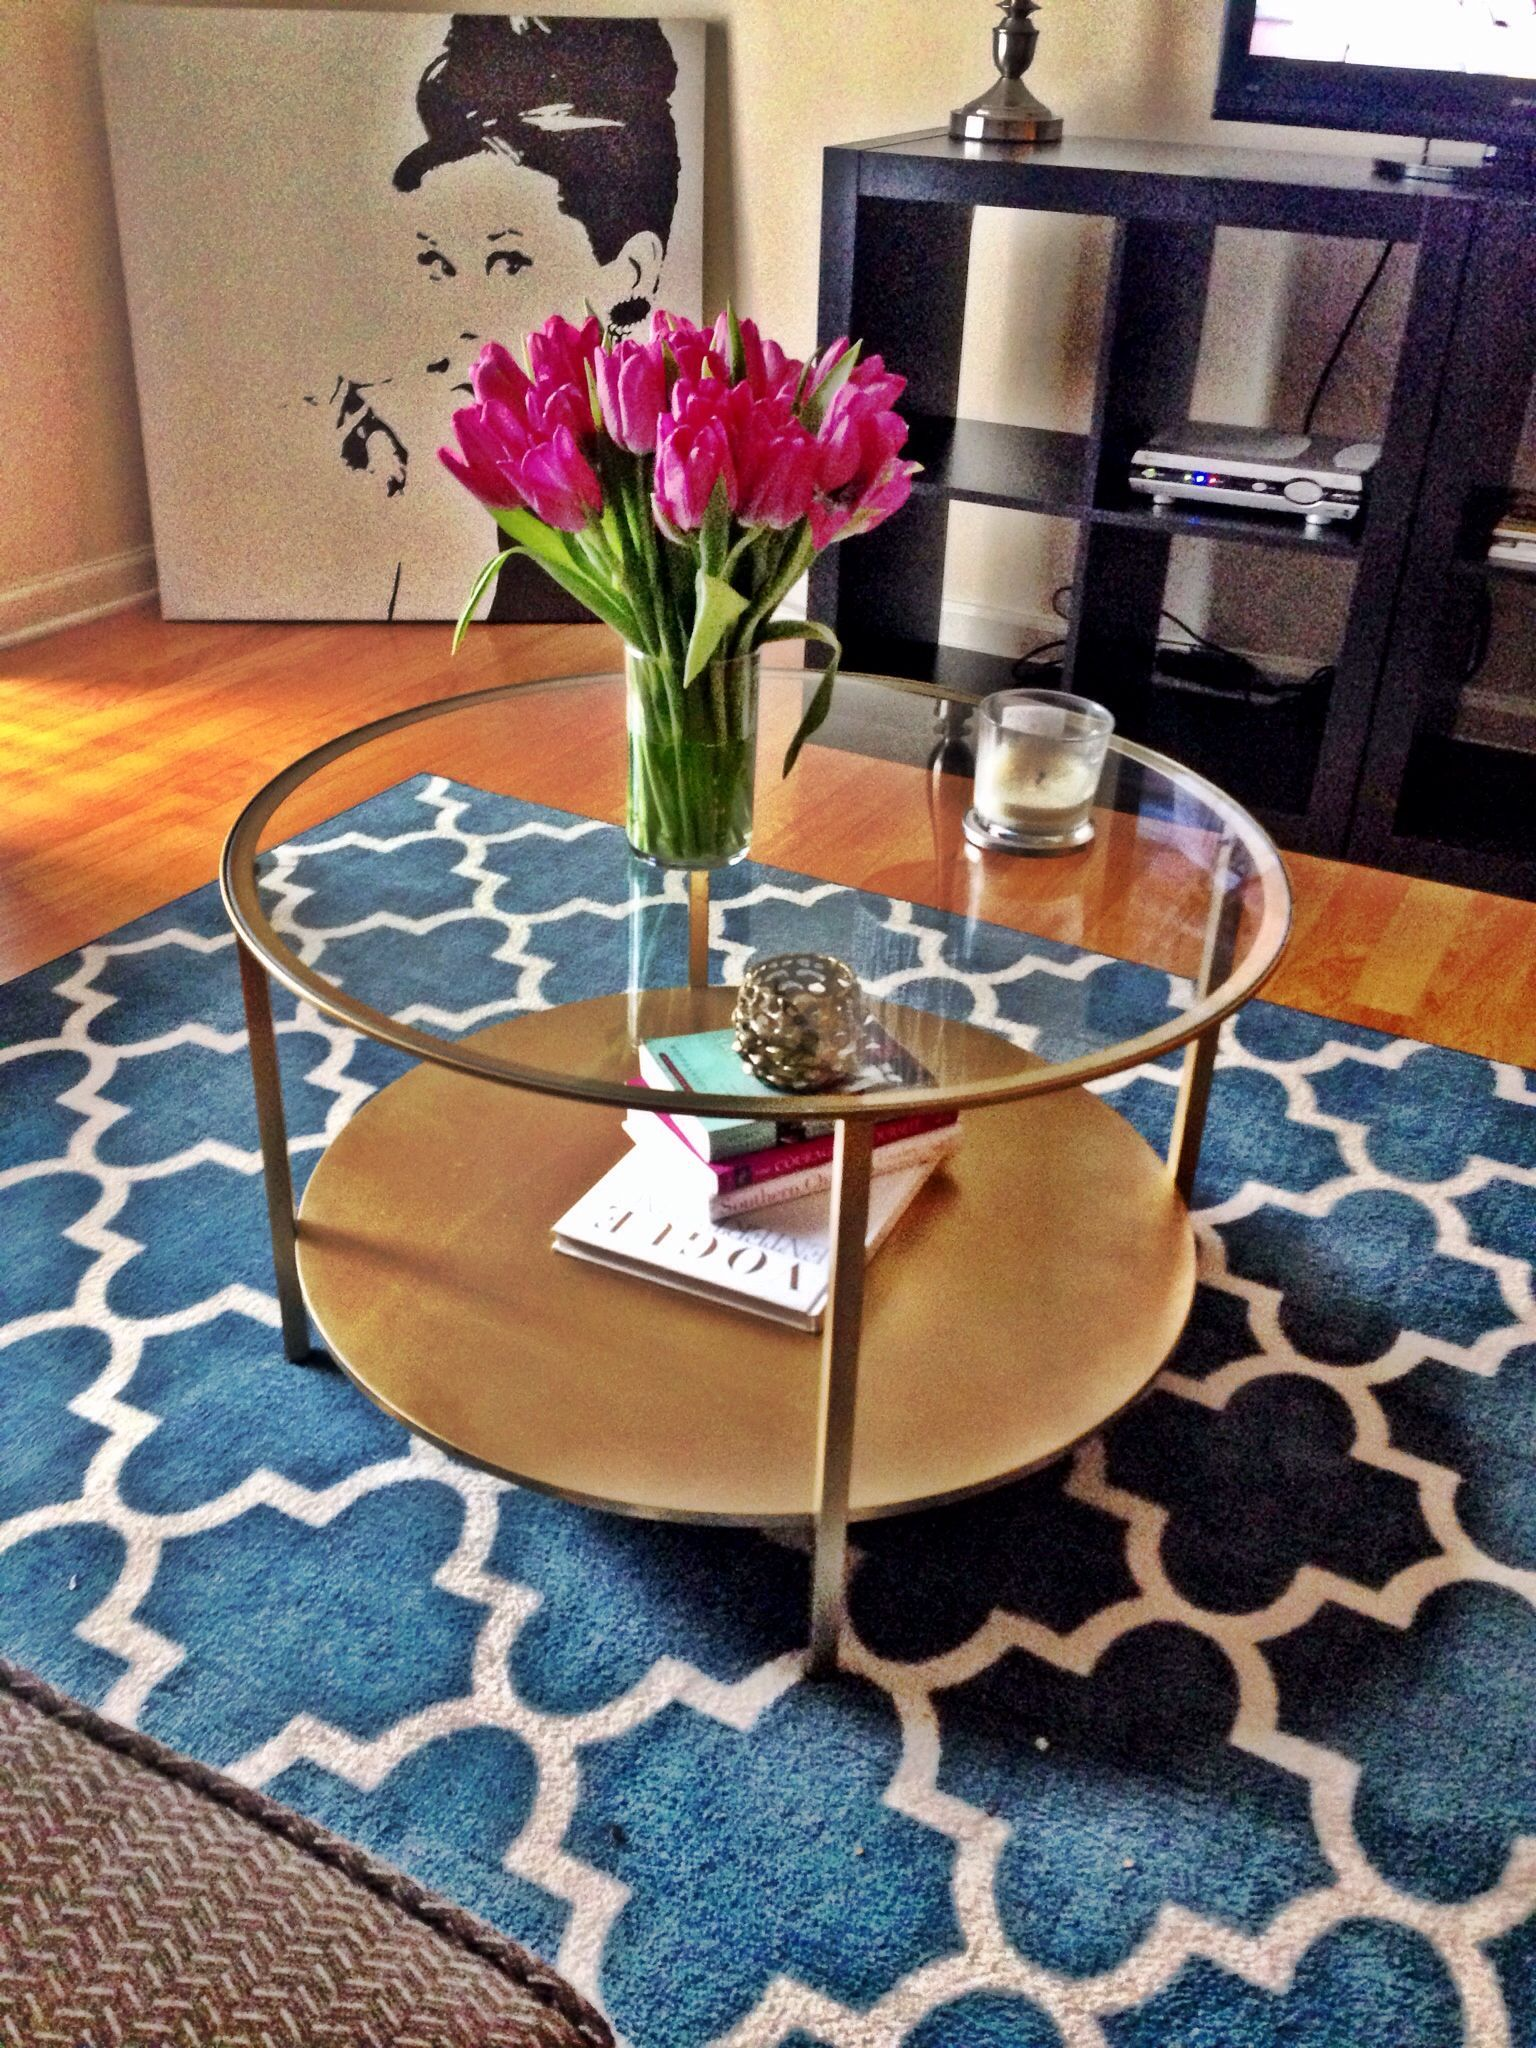 Ikeahack Diy Round Coffee Table Round Glass Coffee Table Coffee Table Ikea Coffee Table [ 2048 x 1536 Pixel ]